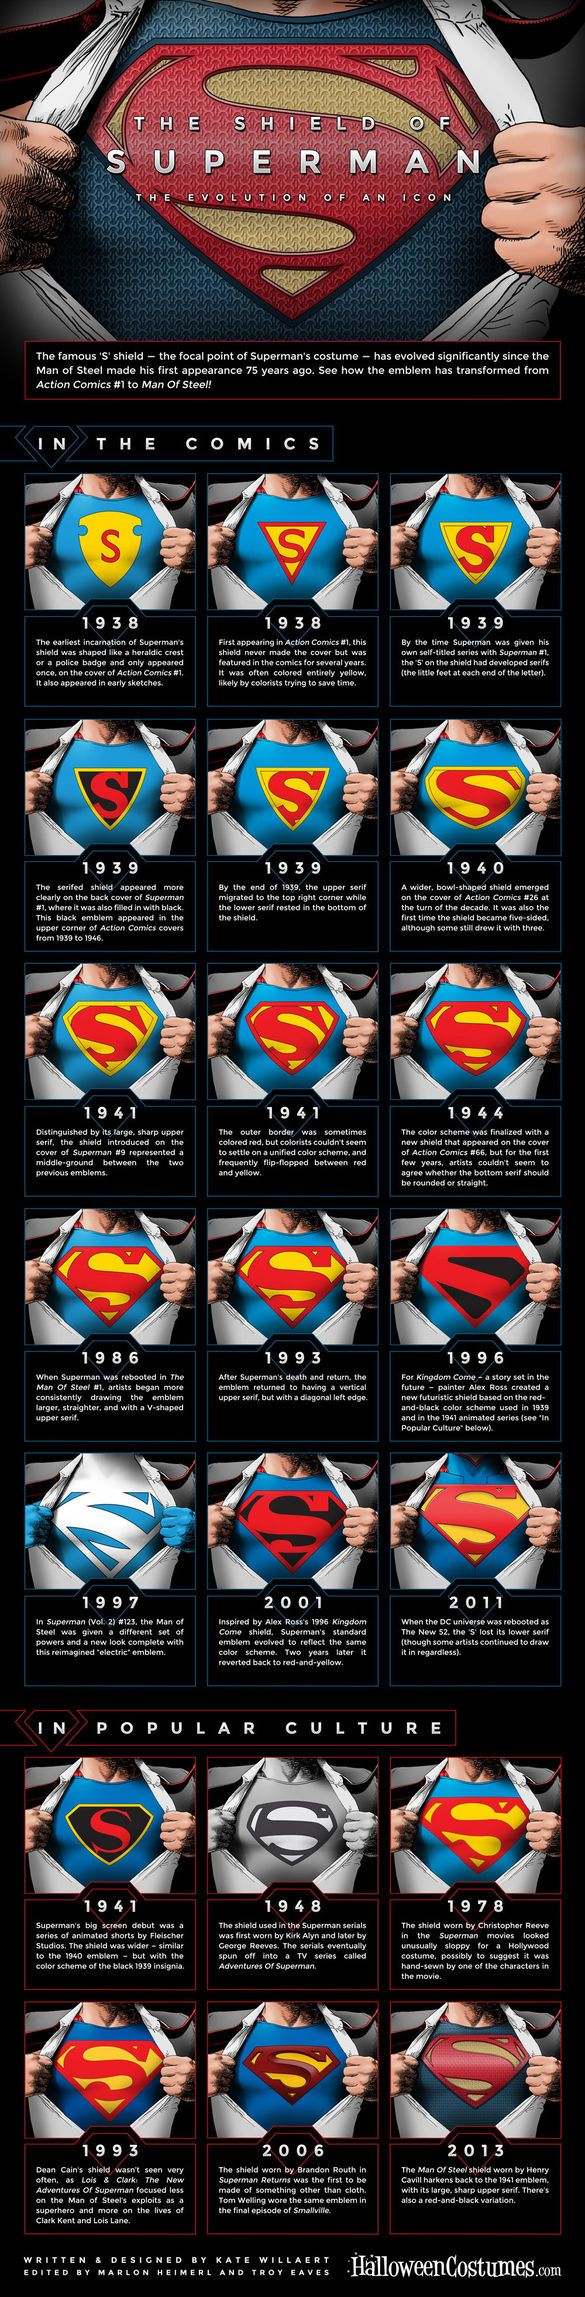 The Evolution of the Superman S-Shield Logo From 1938 To 2013. 생방송카지노 게임 생중계카지노 【MAS77】.【COM】생방송카지노 게임 생중계카지노 생방송카지노 게임 생중계카지노 생방송카지노 게임 생중계카지노 생방송카지노 게임 생중계카지노 생방송카지노 게임 생중계카지노 생방송카지노 게임 생중계카지노 생방송카지노 게임 생중계카지노 생방송카지노 게임 생중계카지노 생방송카지노 게임 생중계카지노 생방송카지노 게임 생중계카지노  생방송카지노 게임 생중계카지노 【MAS77】.【COM】